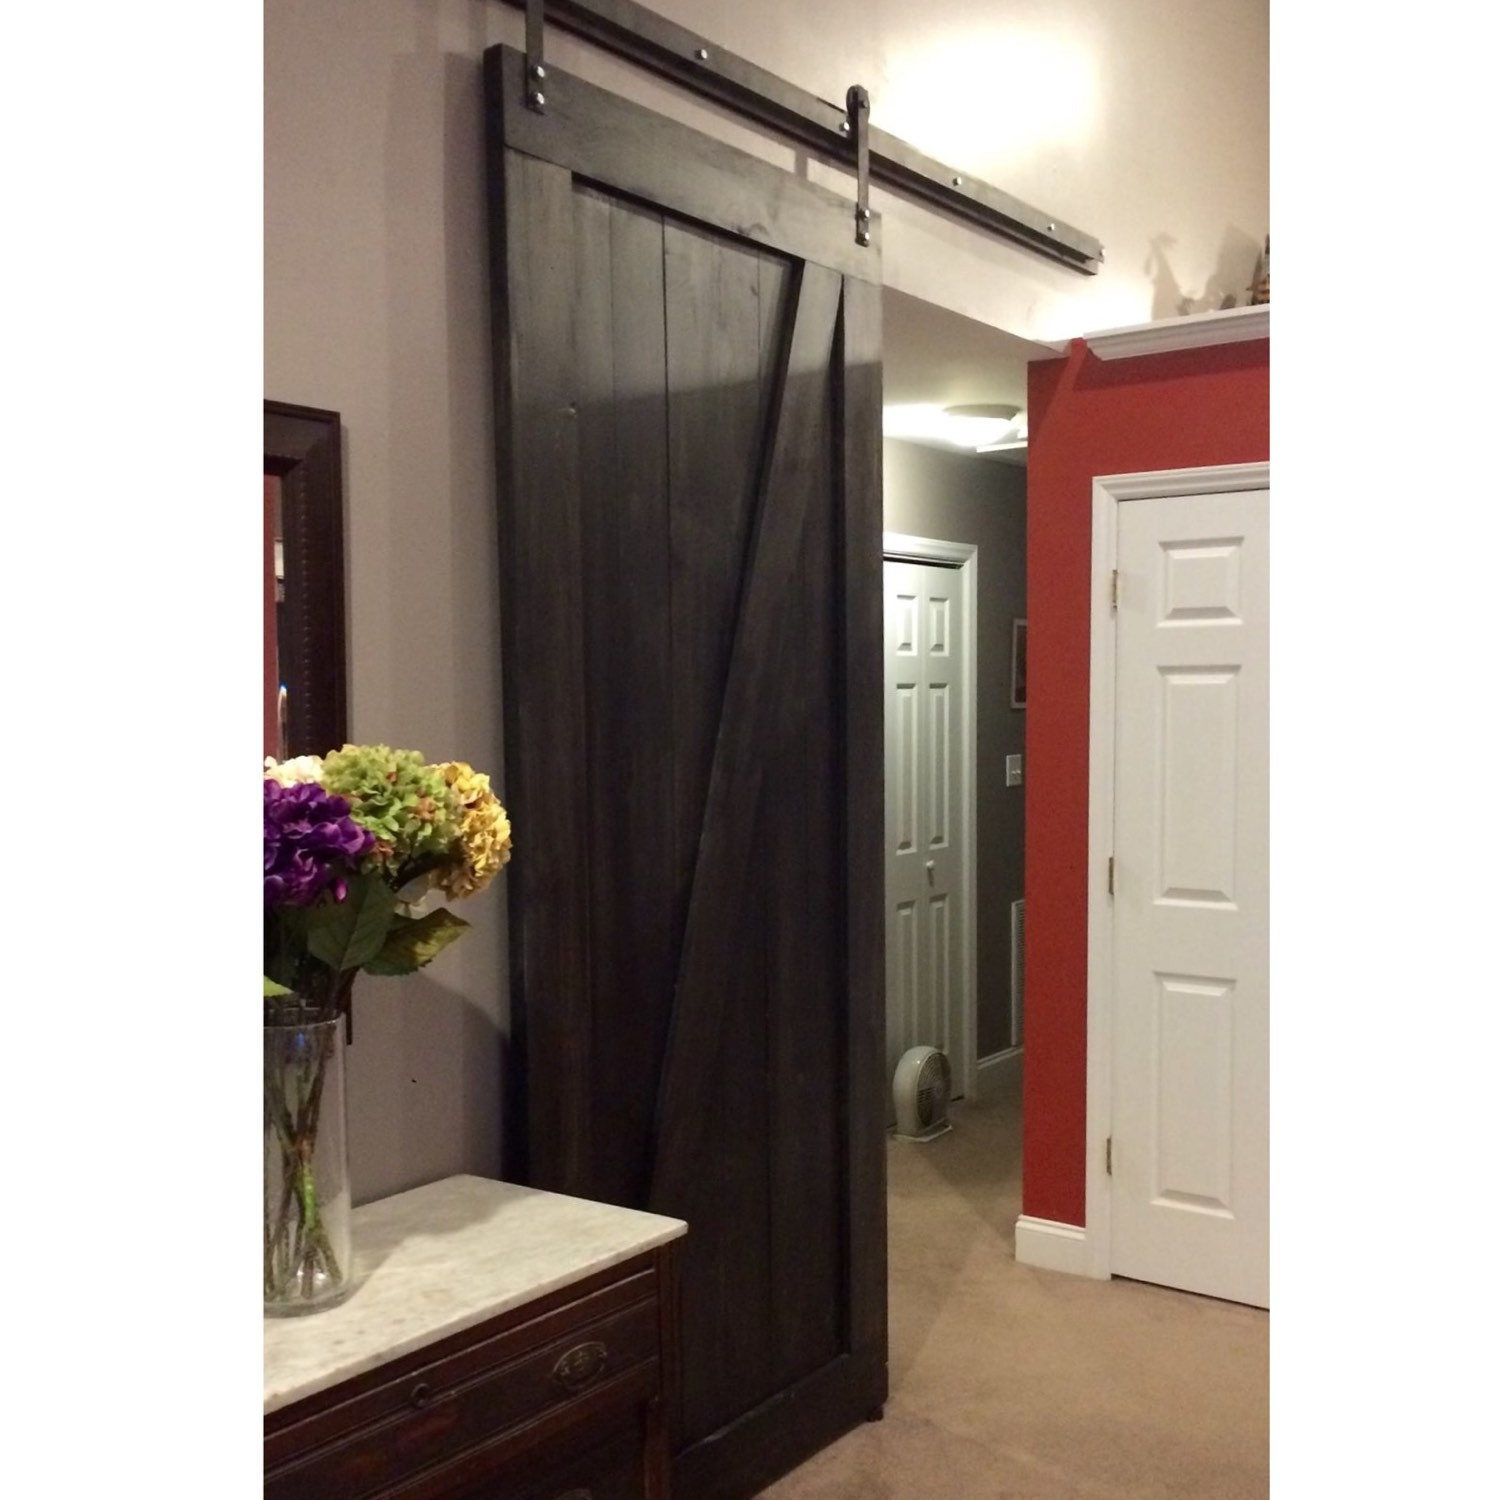 rolling door hardware doors plumbing wood even the to easy constructors for pantry follow tutorials with barn diy most using barns pipe novice super